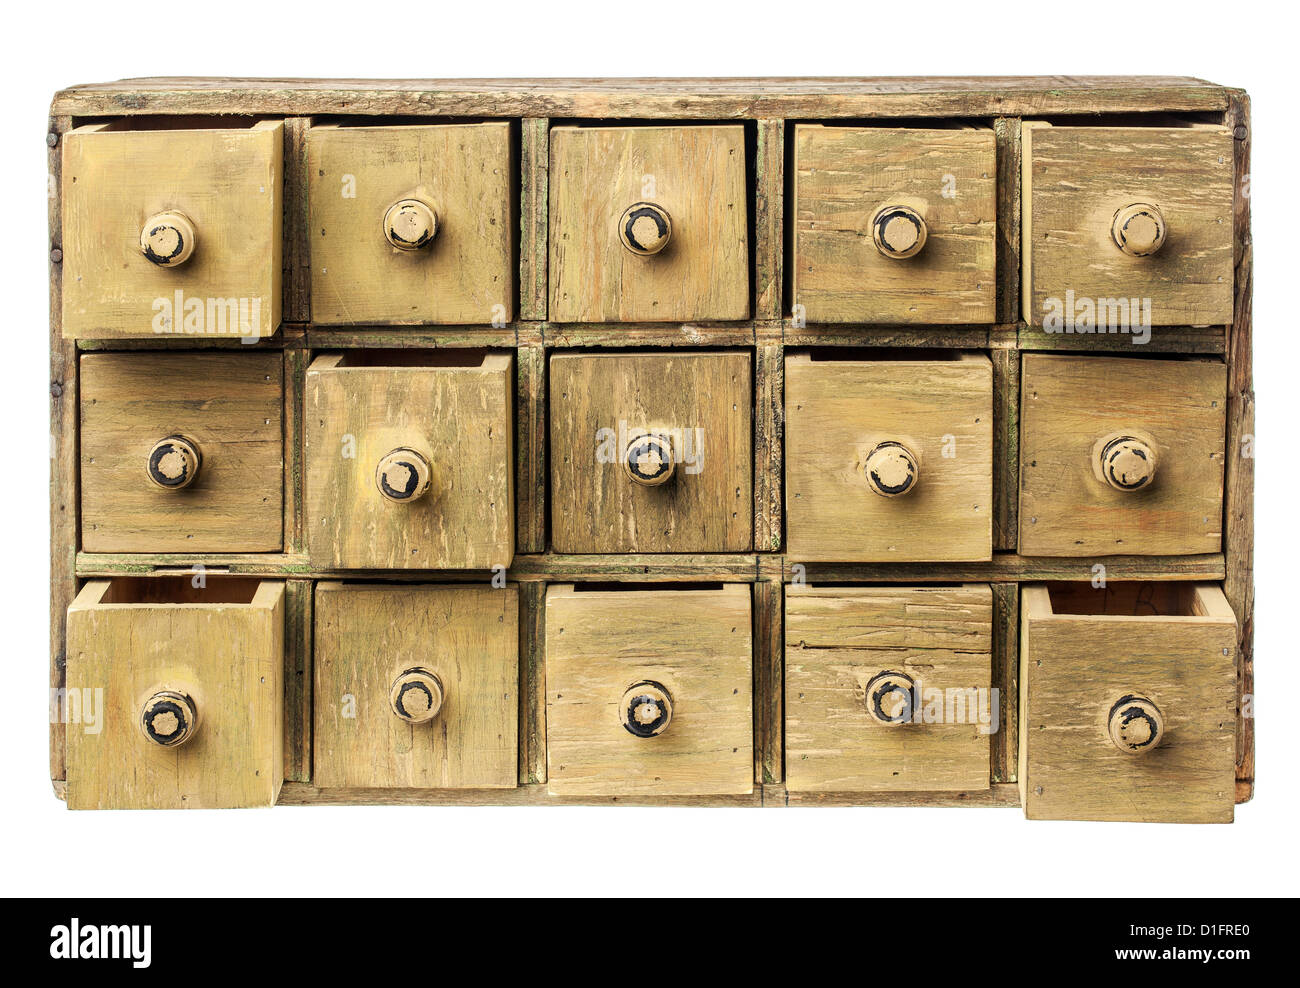 primitive wooden apothecary or catalog cabinet with partially open drawers - storage or sorting concept - Stock Image